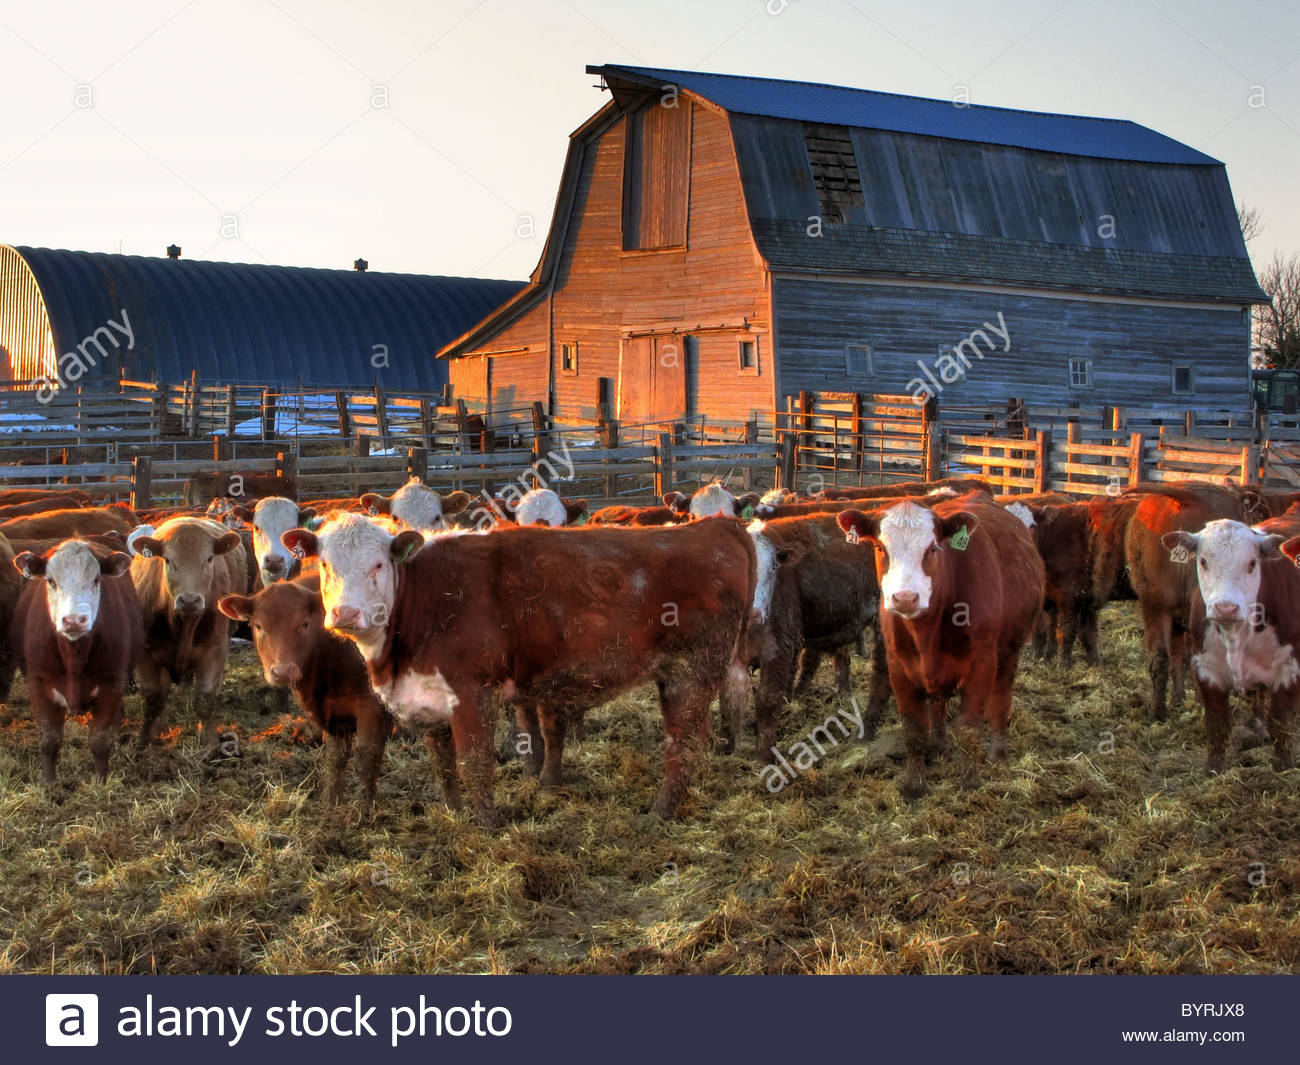 Livestock   Crossbred beef cattle in a ranch corral at sunrise 1300x1065